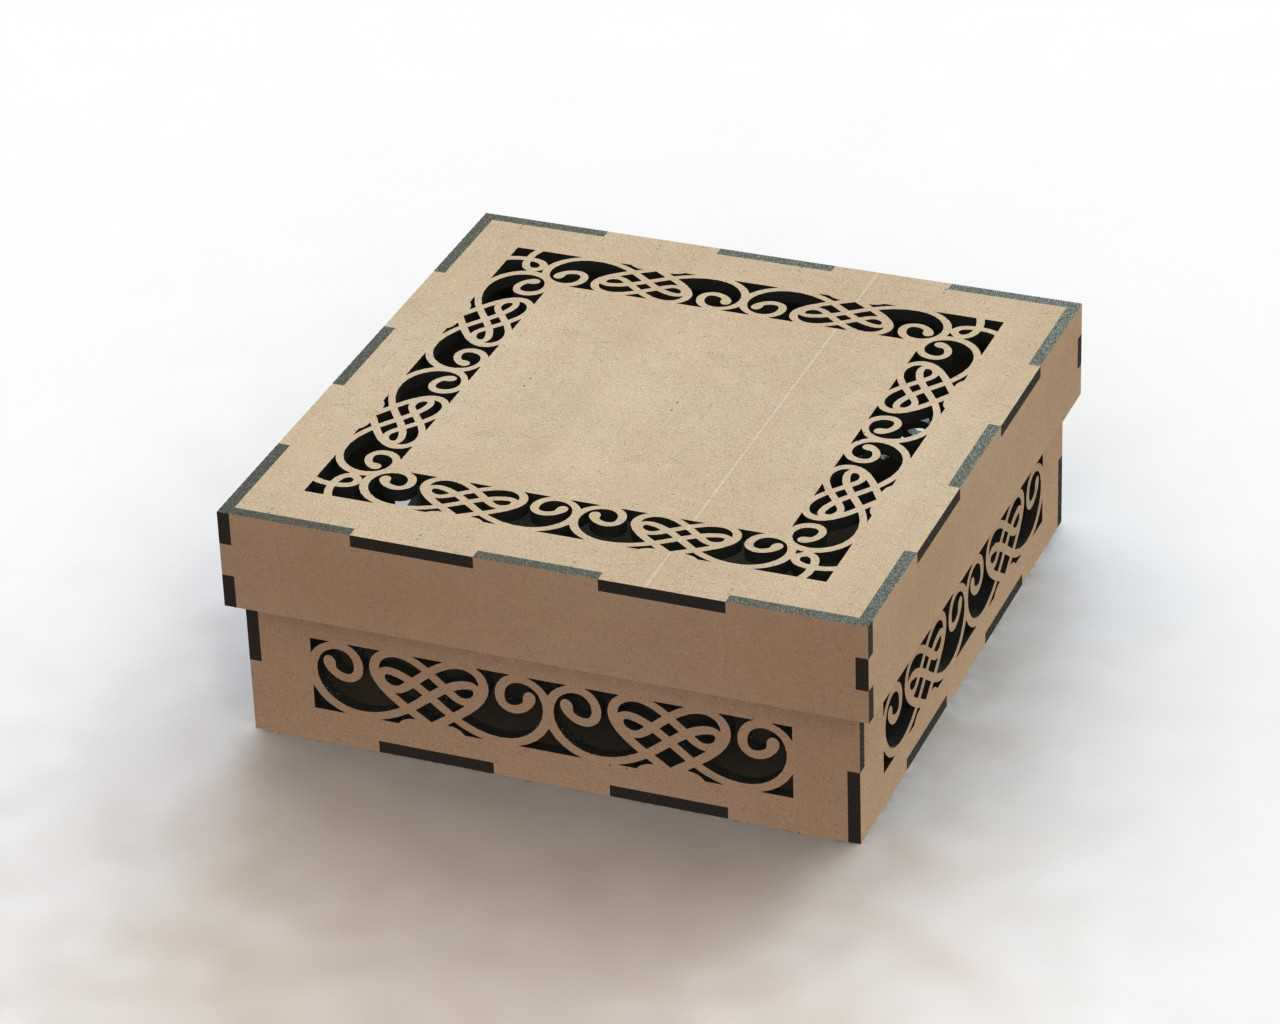 Cnc Laser Cut Wooden Gift Box Lid Template Free DXF File